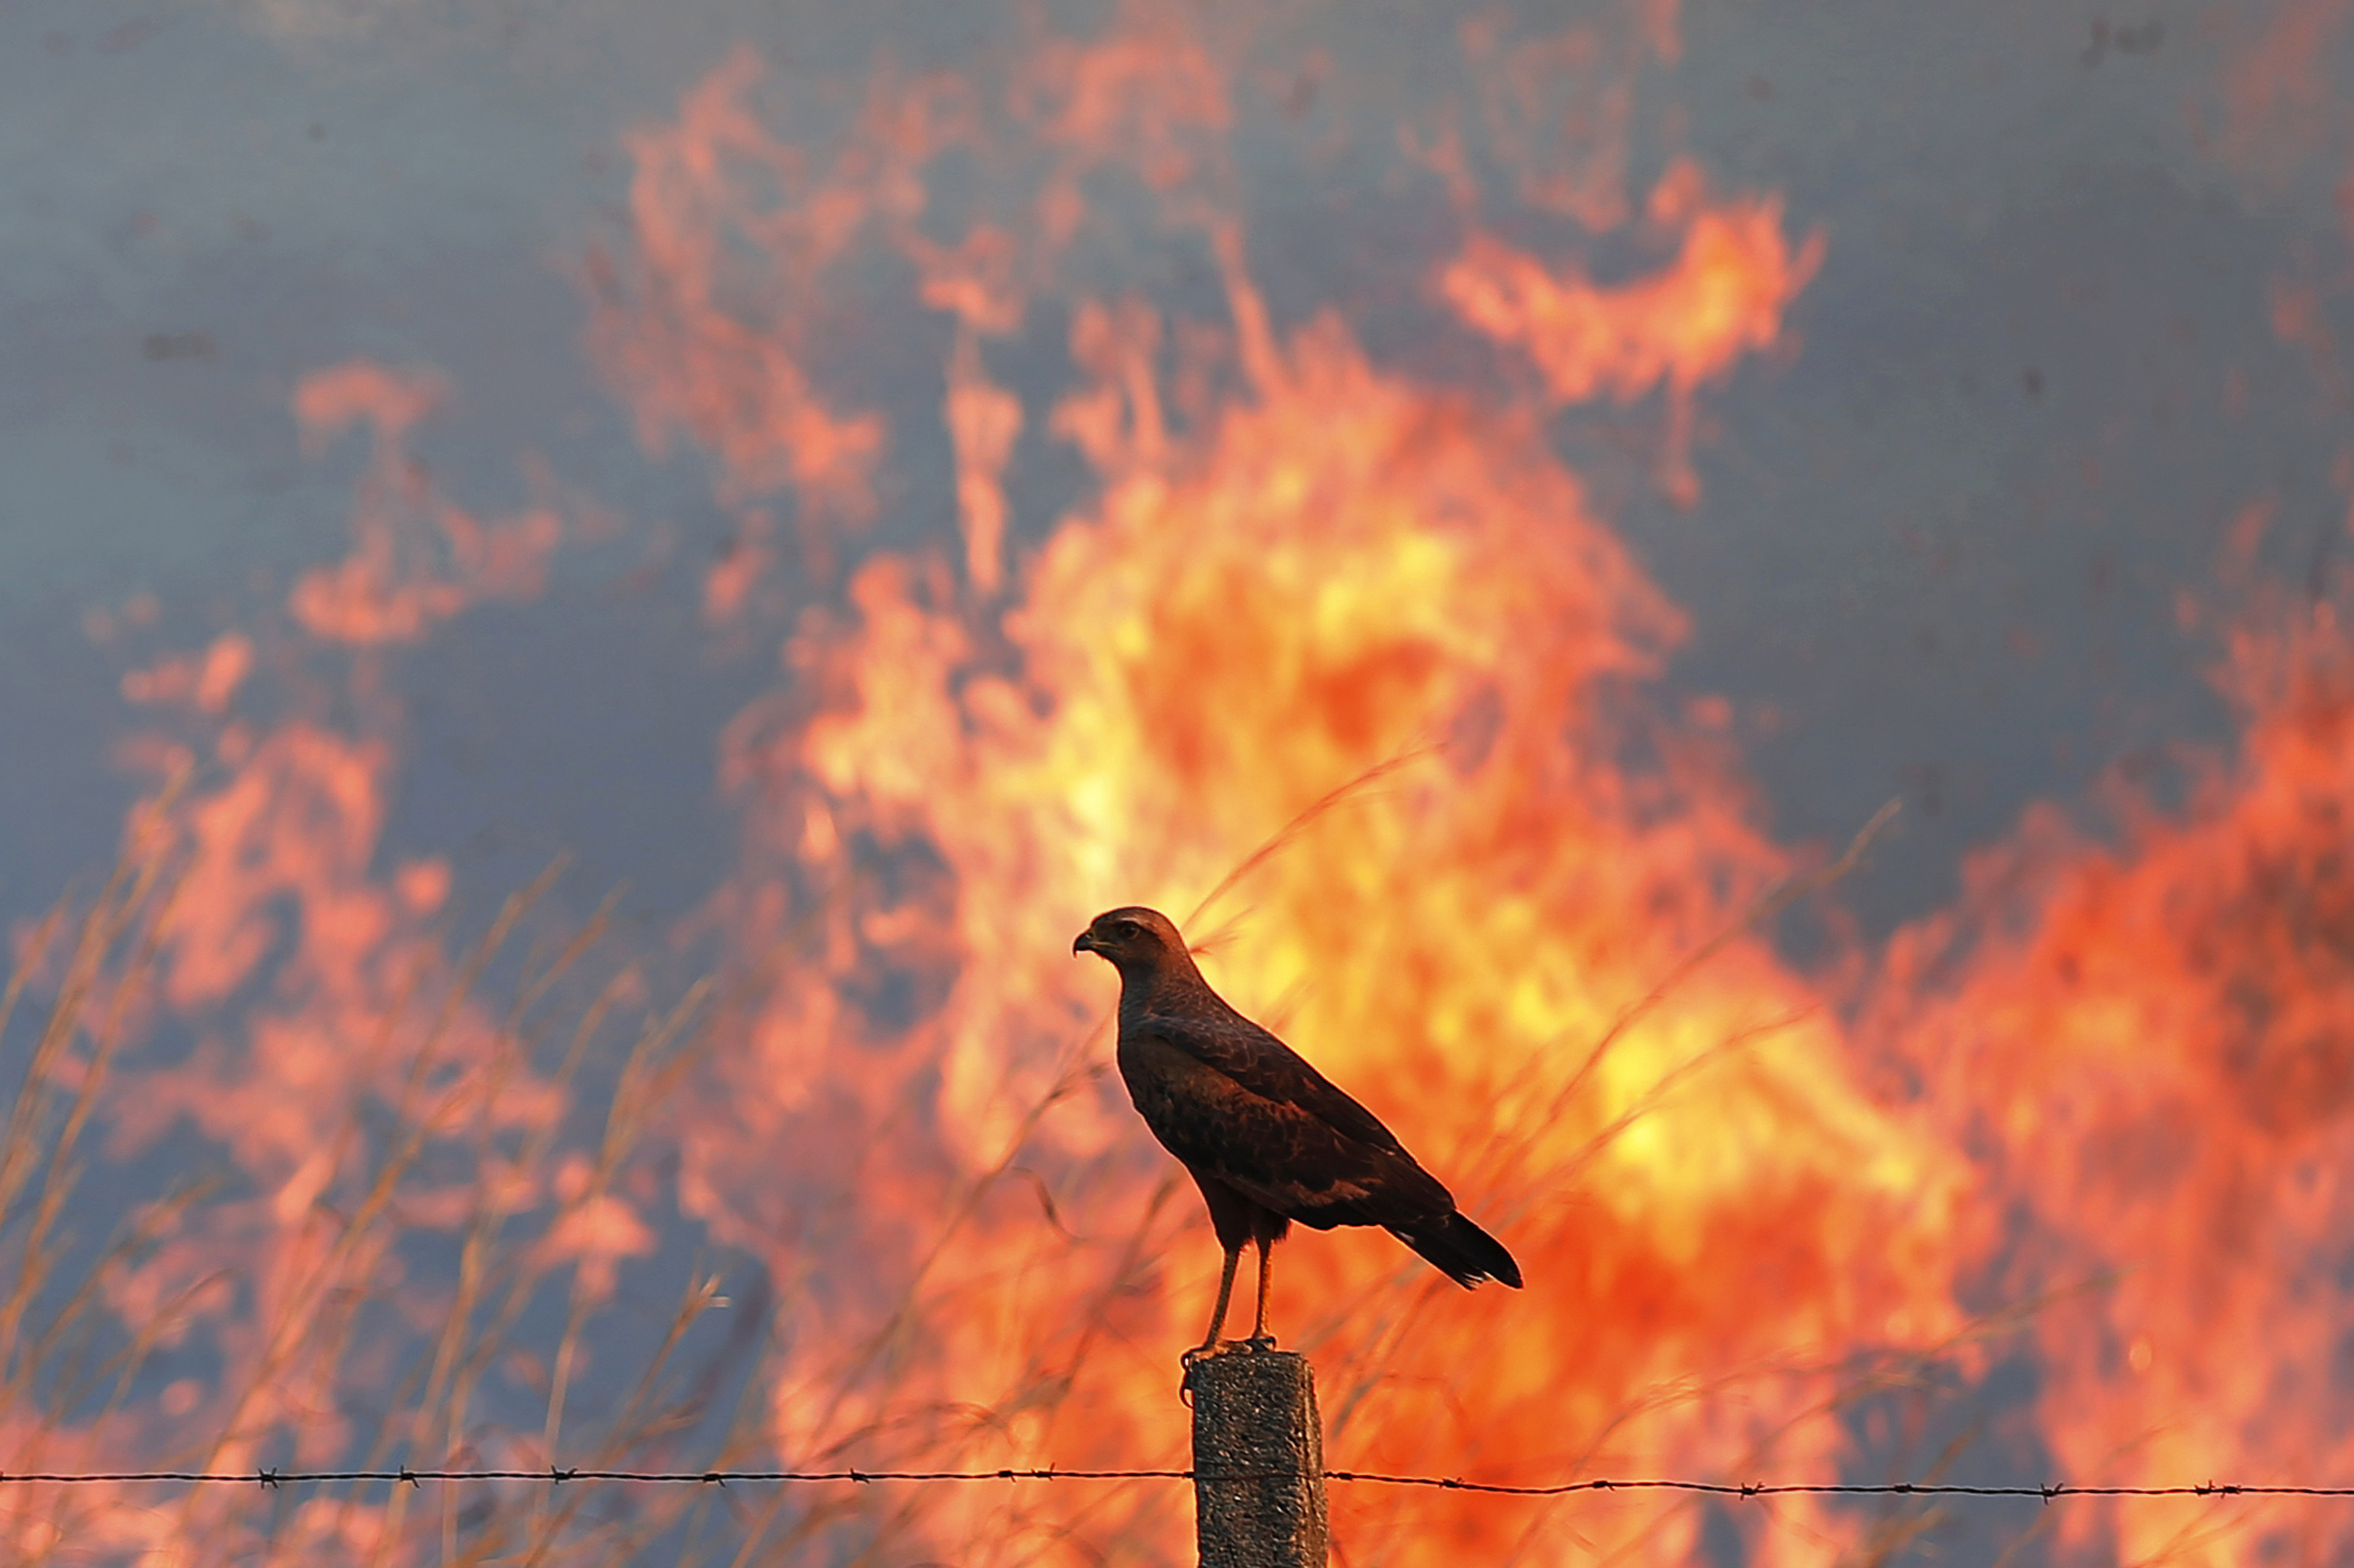 A bird perches on a post as a wildfire burns in the background, near the Sobradinho neighbourhood in Brasilia September 12, 2014. Drought, high temperatures and areas of low humidity have caused fires to start at several places in Brasilia, according to the fire-fighters putting out the blazes.